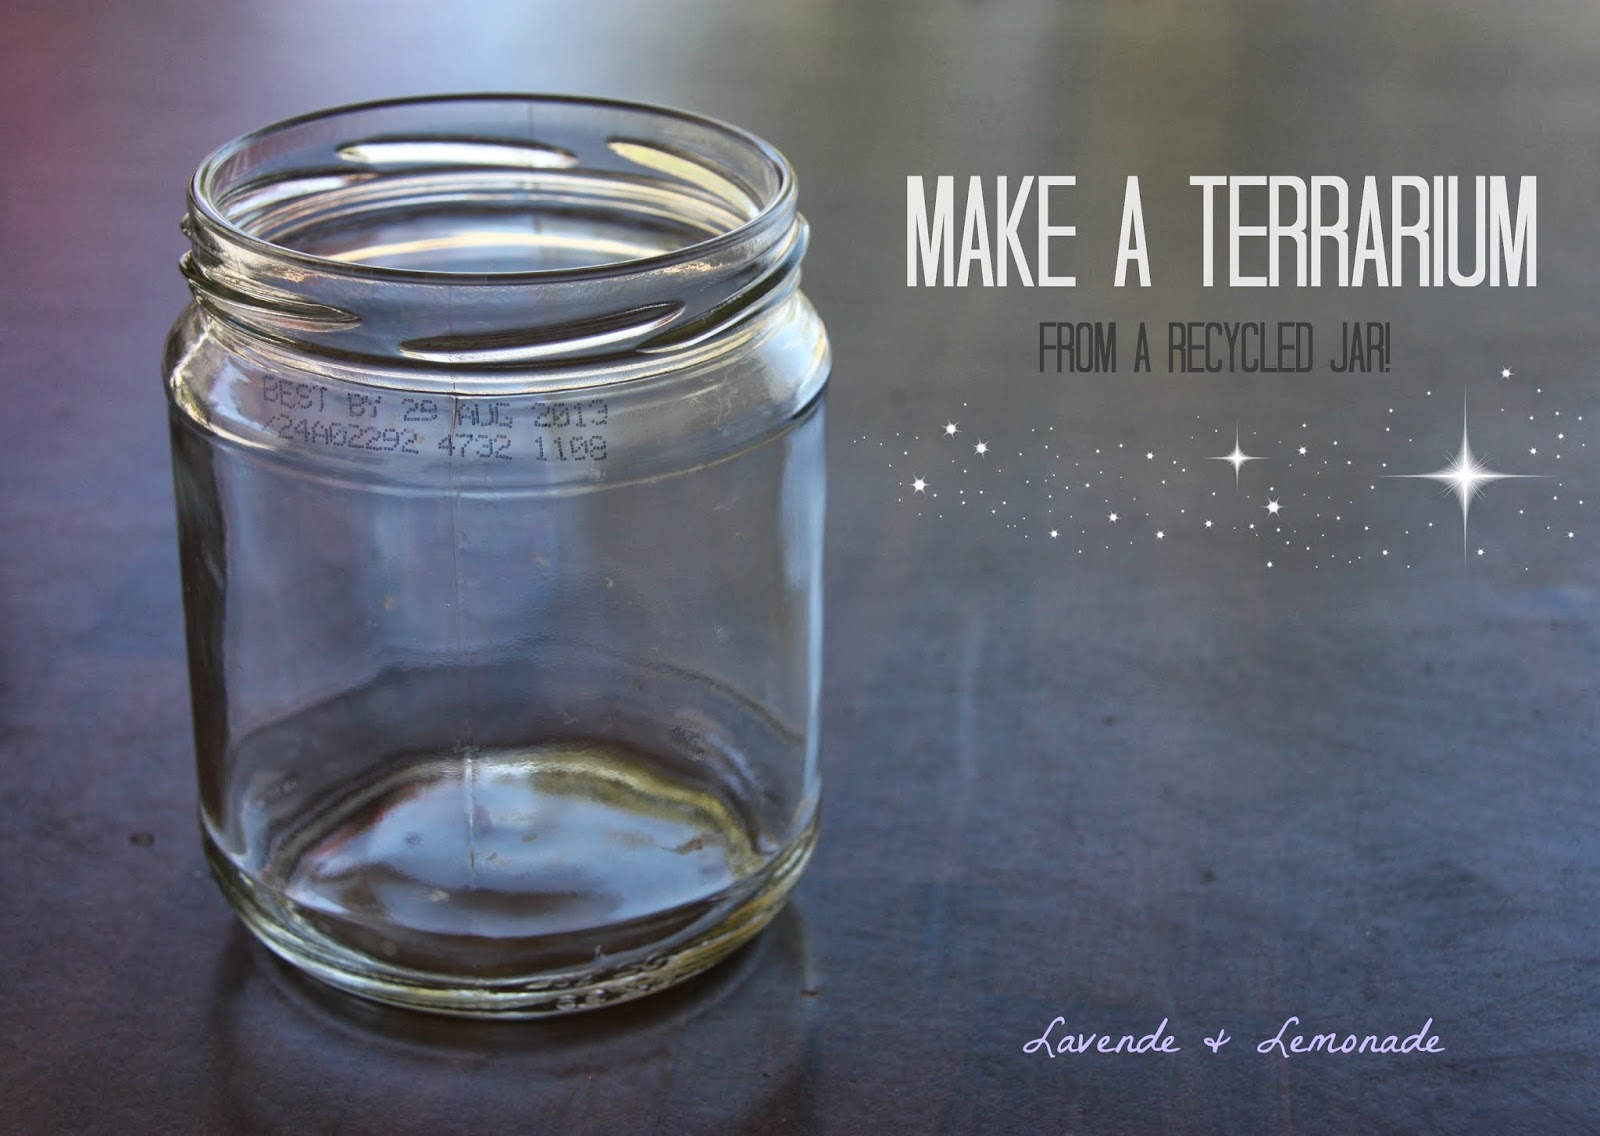 DIY: Make a Terrarium